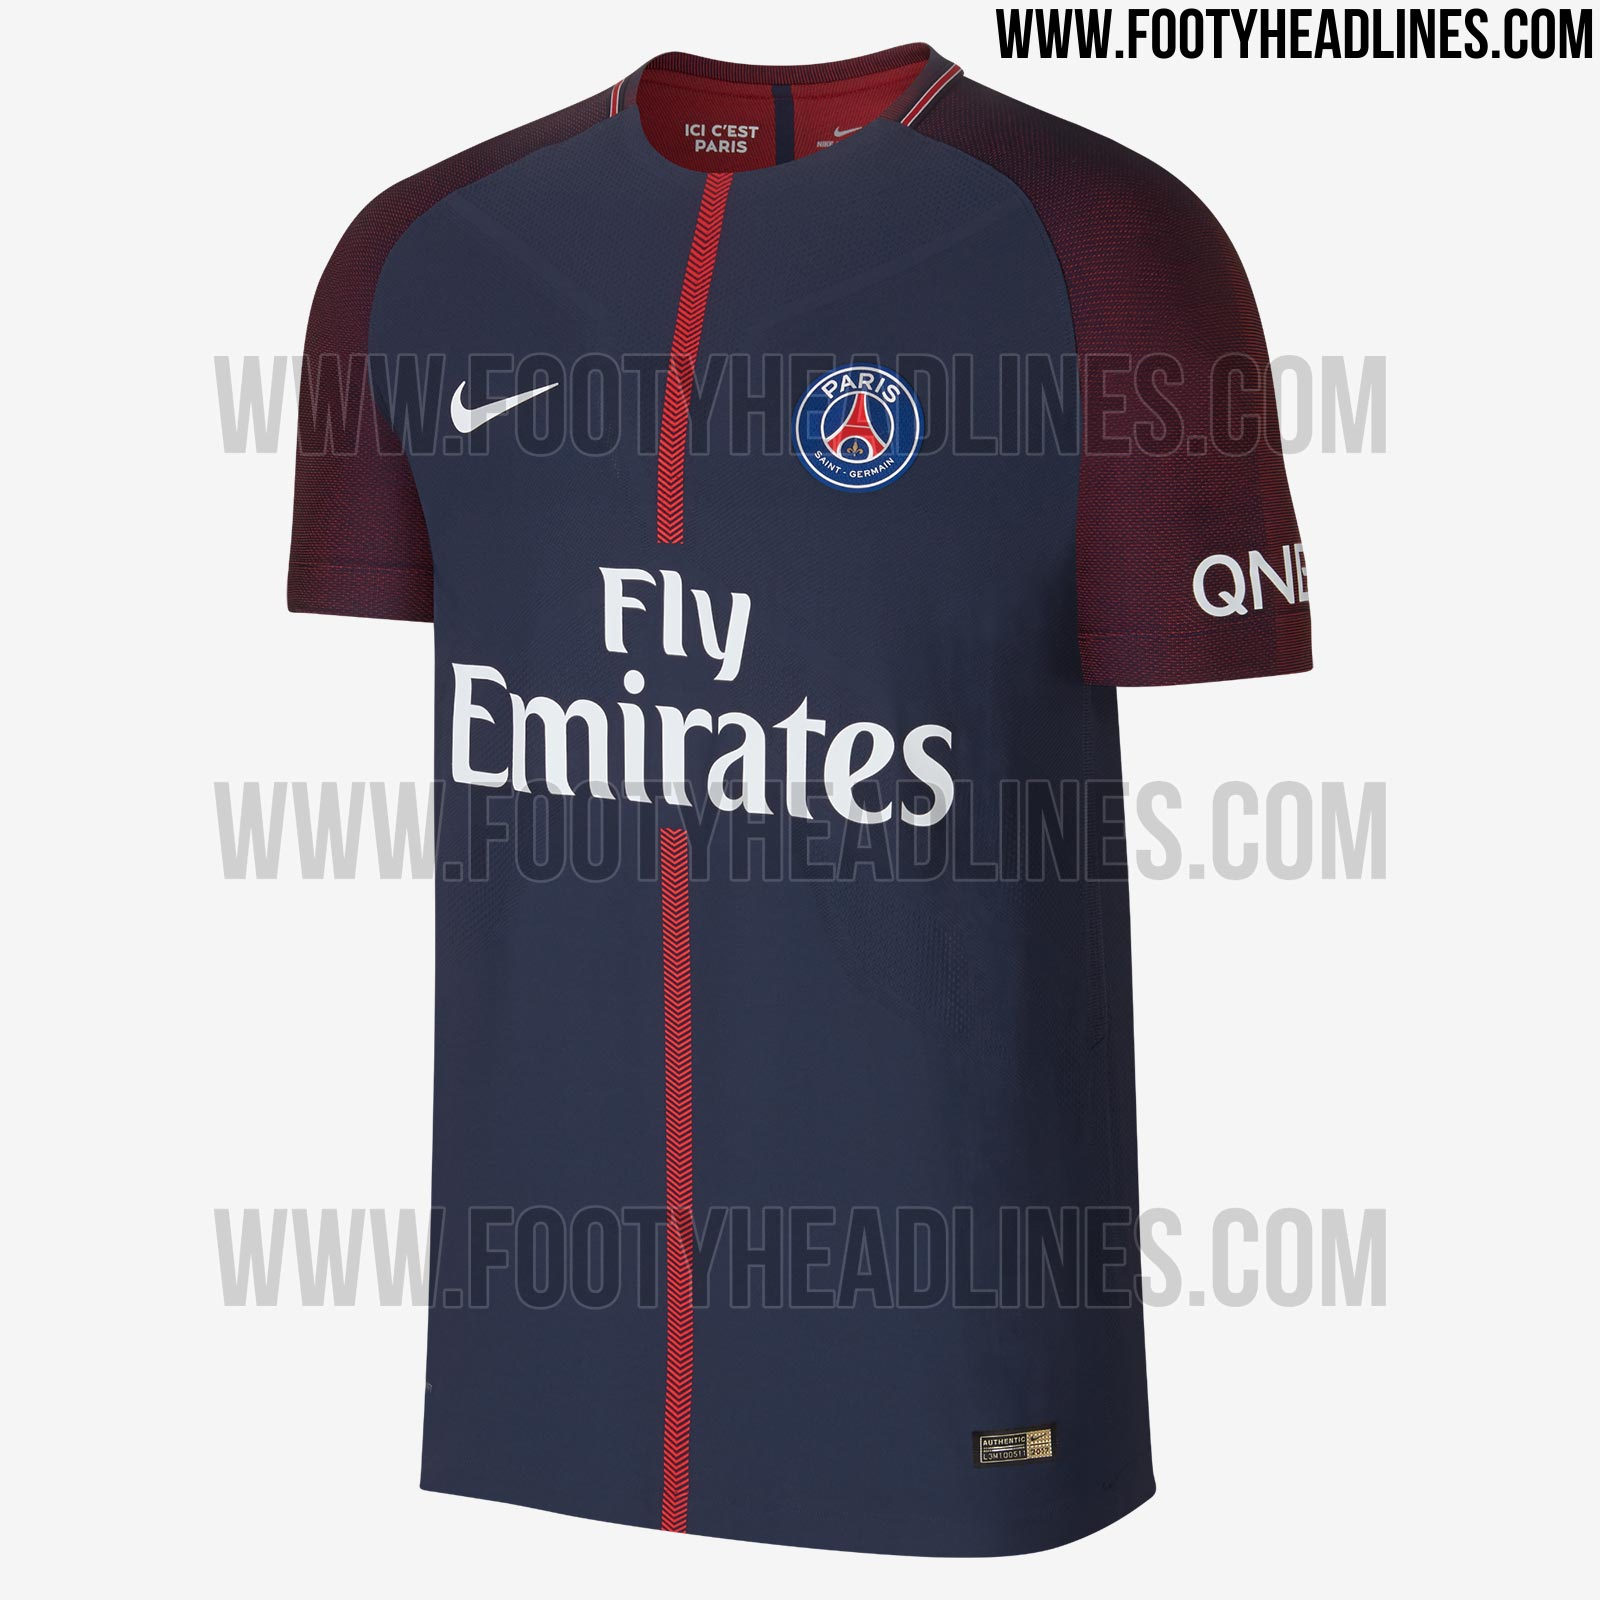 psg-17-18-home-kit-3.jpg